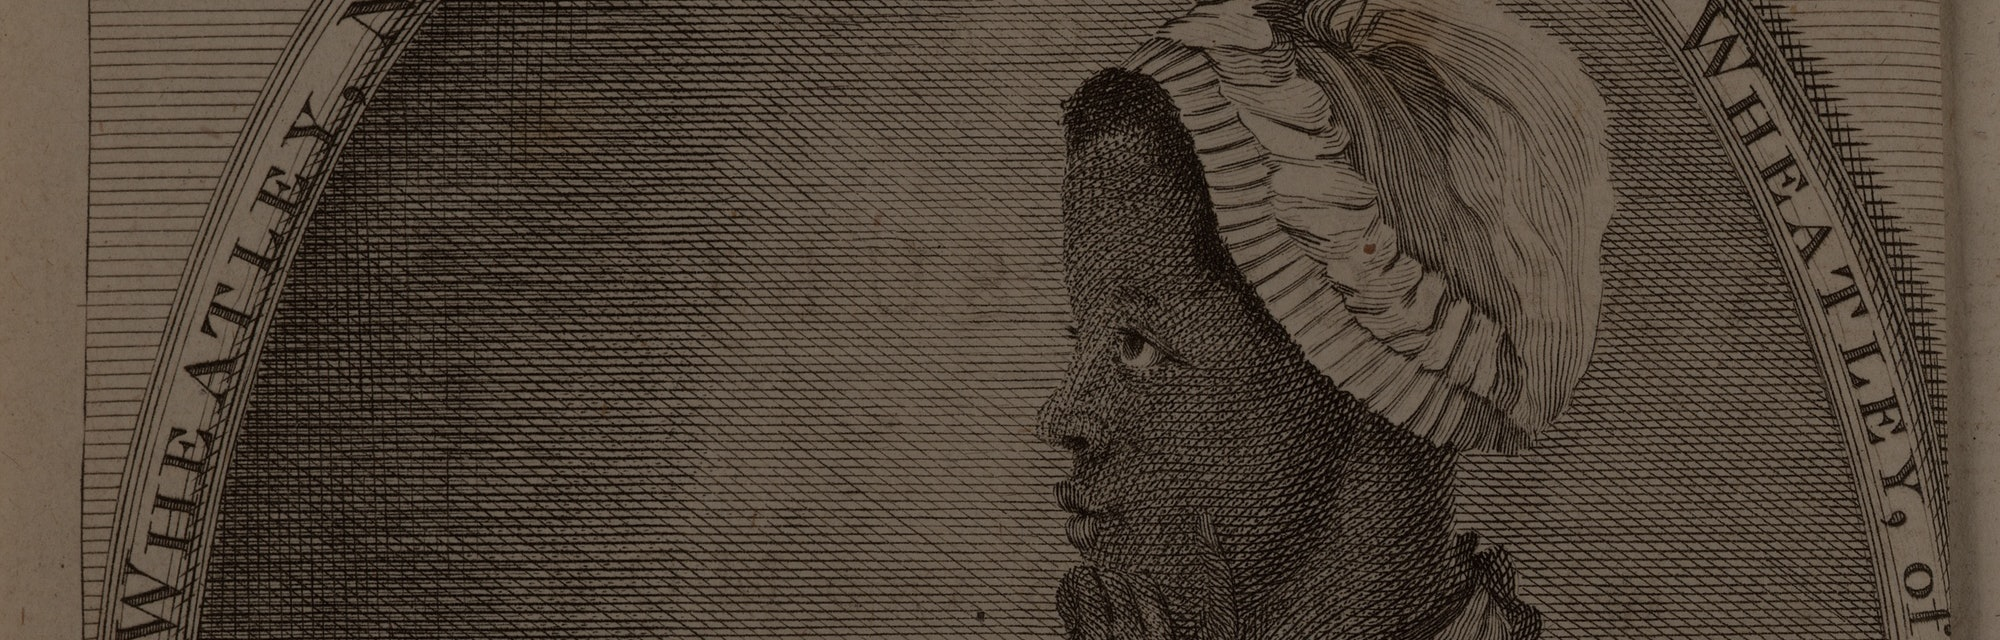 Phillis Wheatley portrait in profile, seated writing and looking off into the distance.